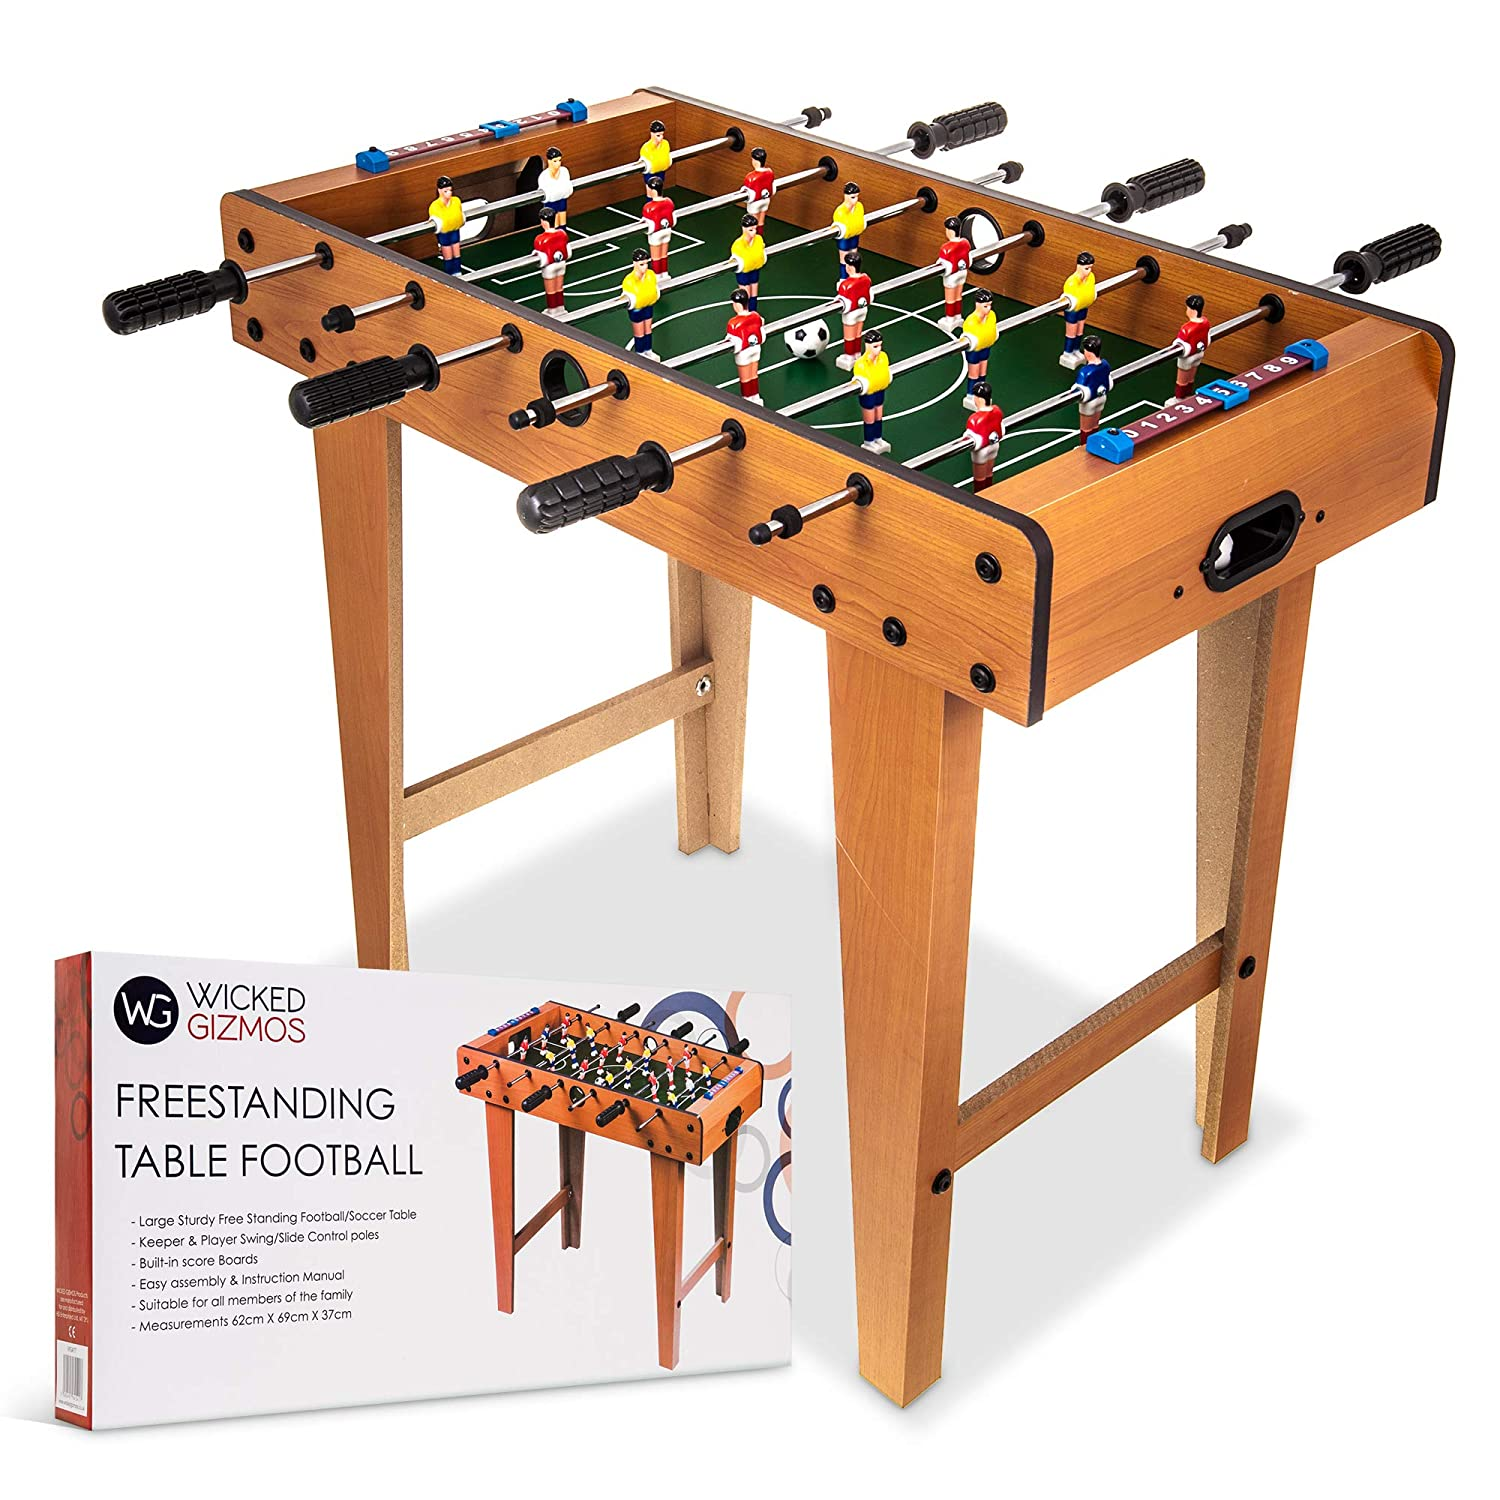 Includes 9 Players per Side and 2 Balls Large Free Standing Quality Wooden Foosball Soccer Sport Board Classic Novelty Retro Toy Gadget Gift WICKED GIZMOS /® Table Top Football Game with Legs